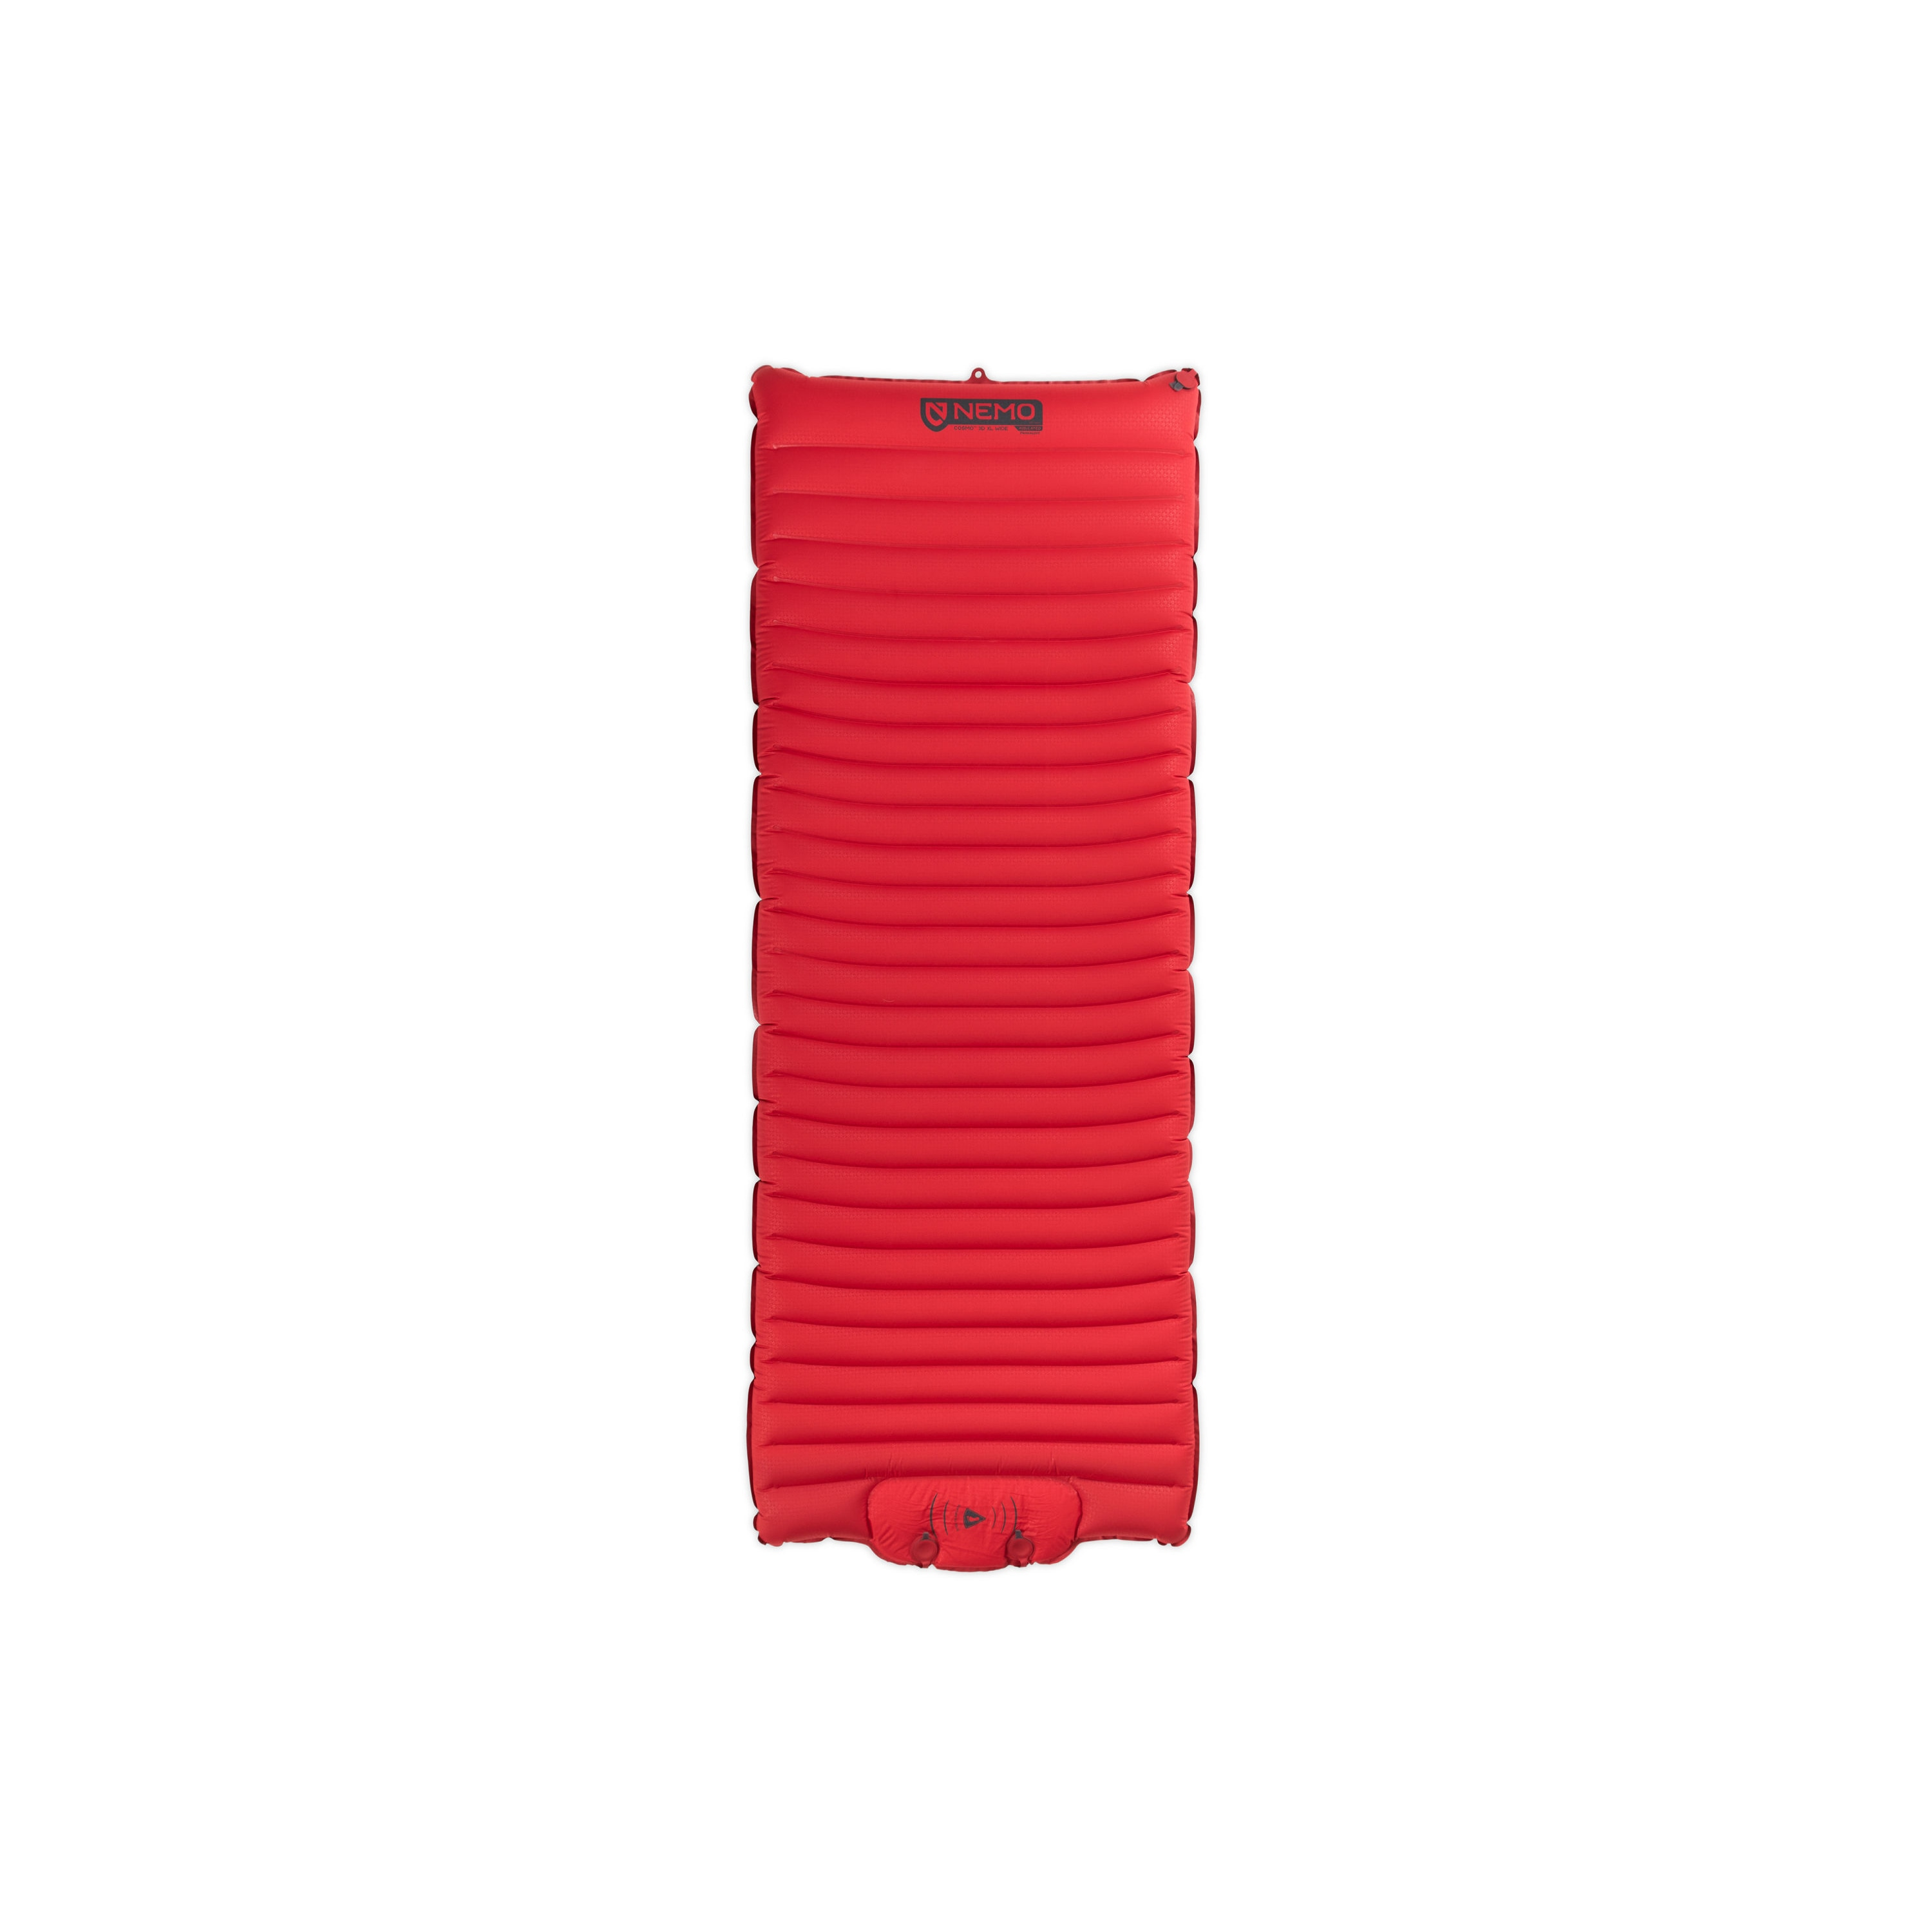 Cosmo 3D Insulated XL Wide